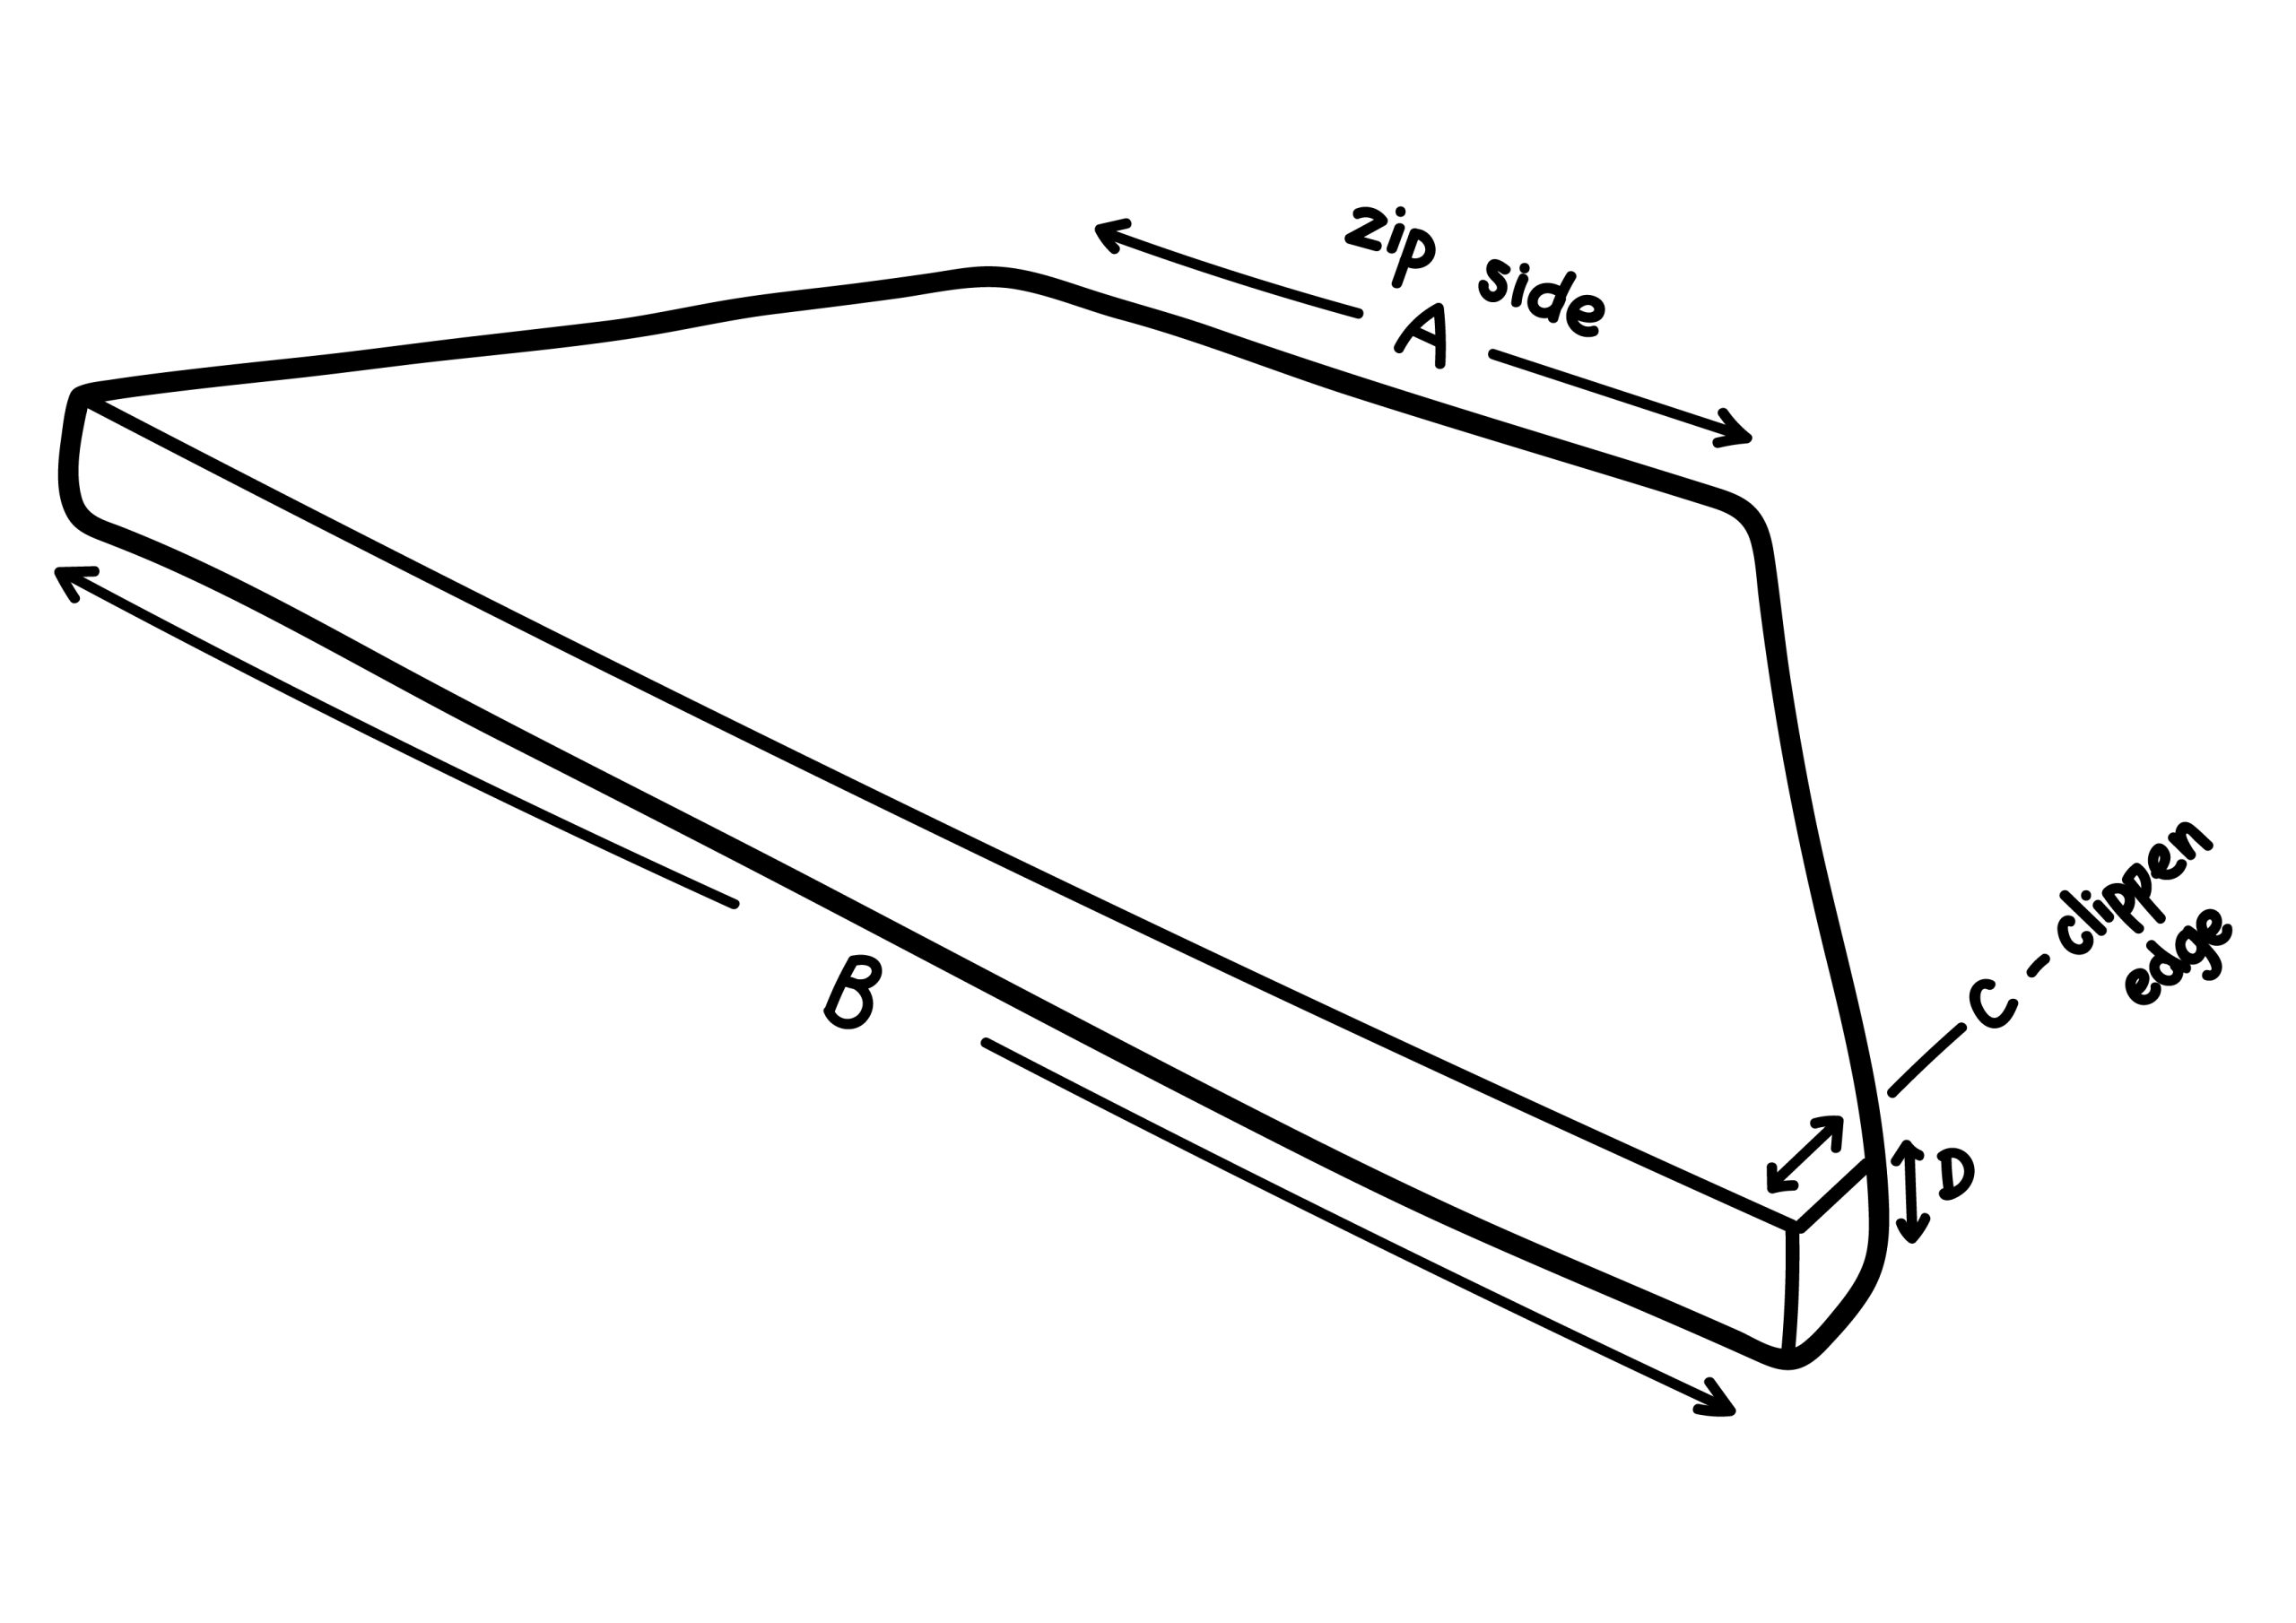 trapezium-clipped-dimensions-scaled.png